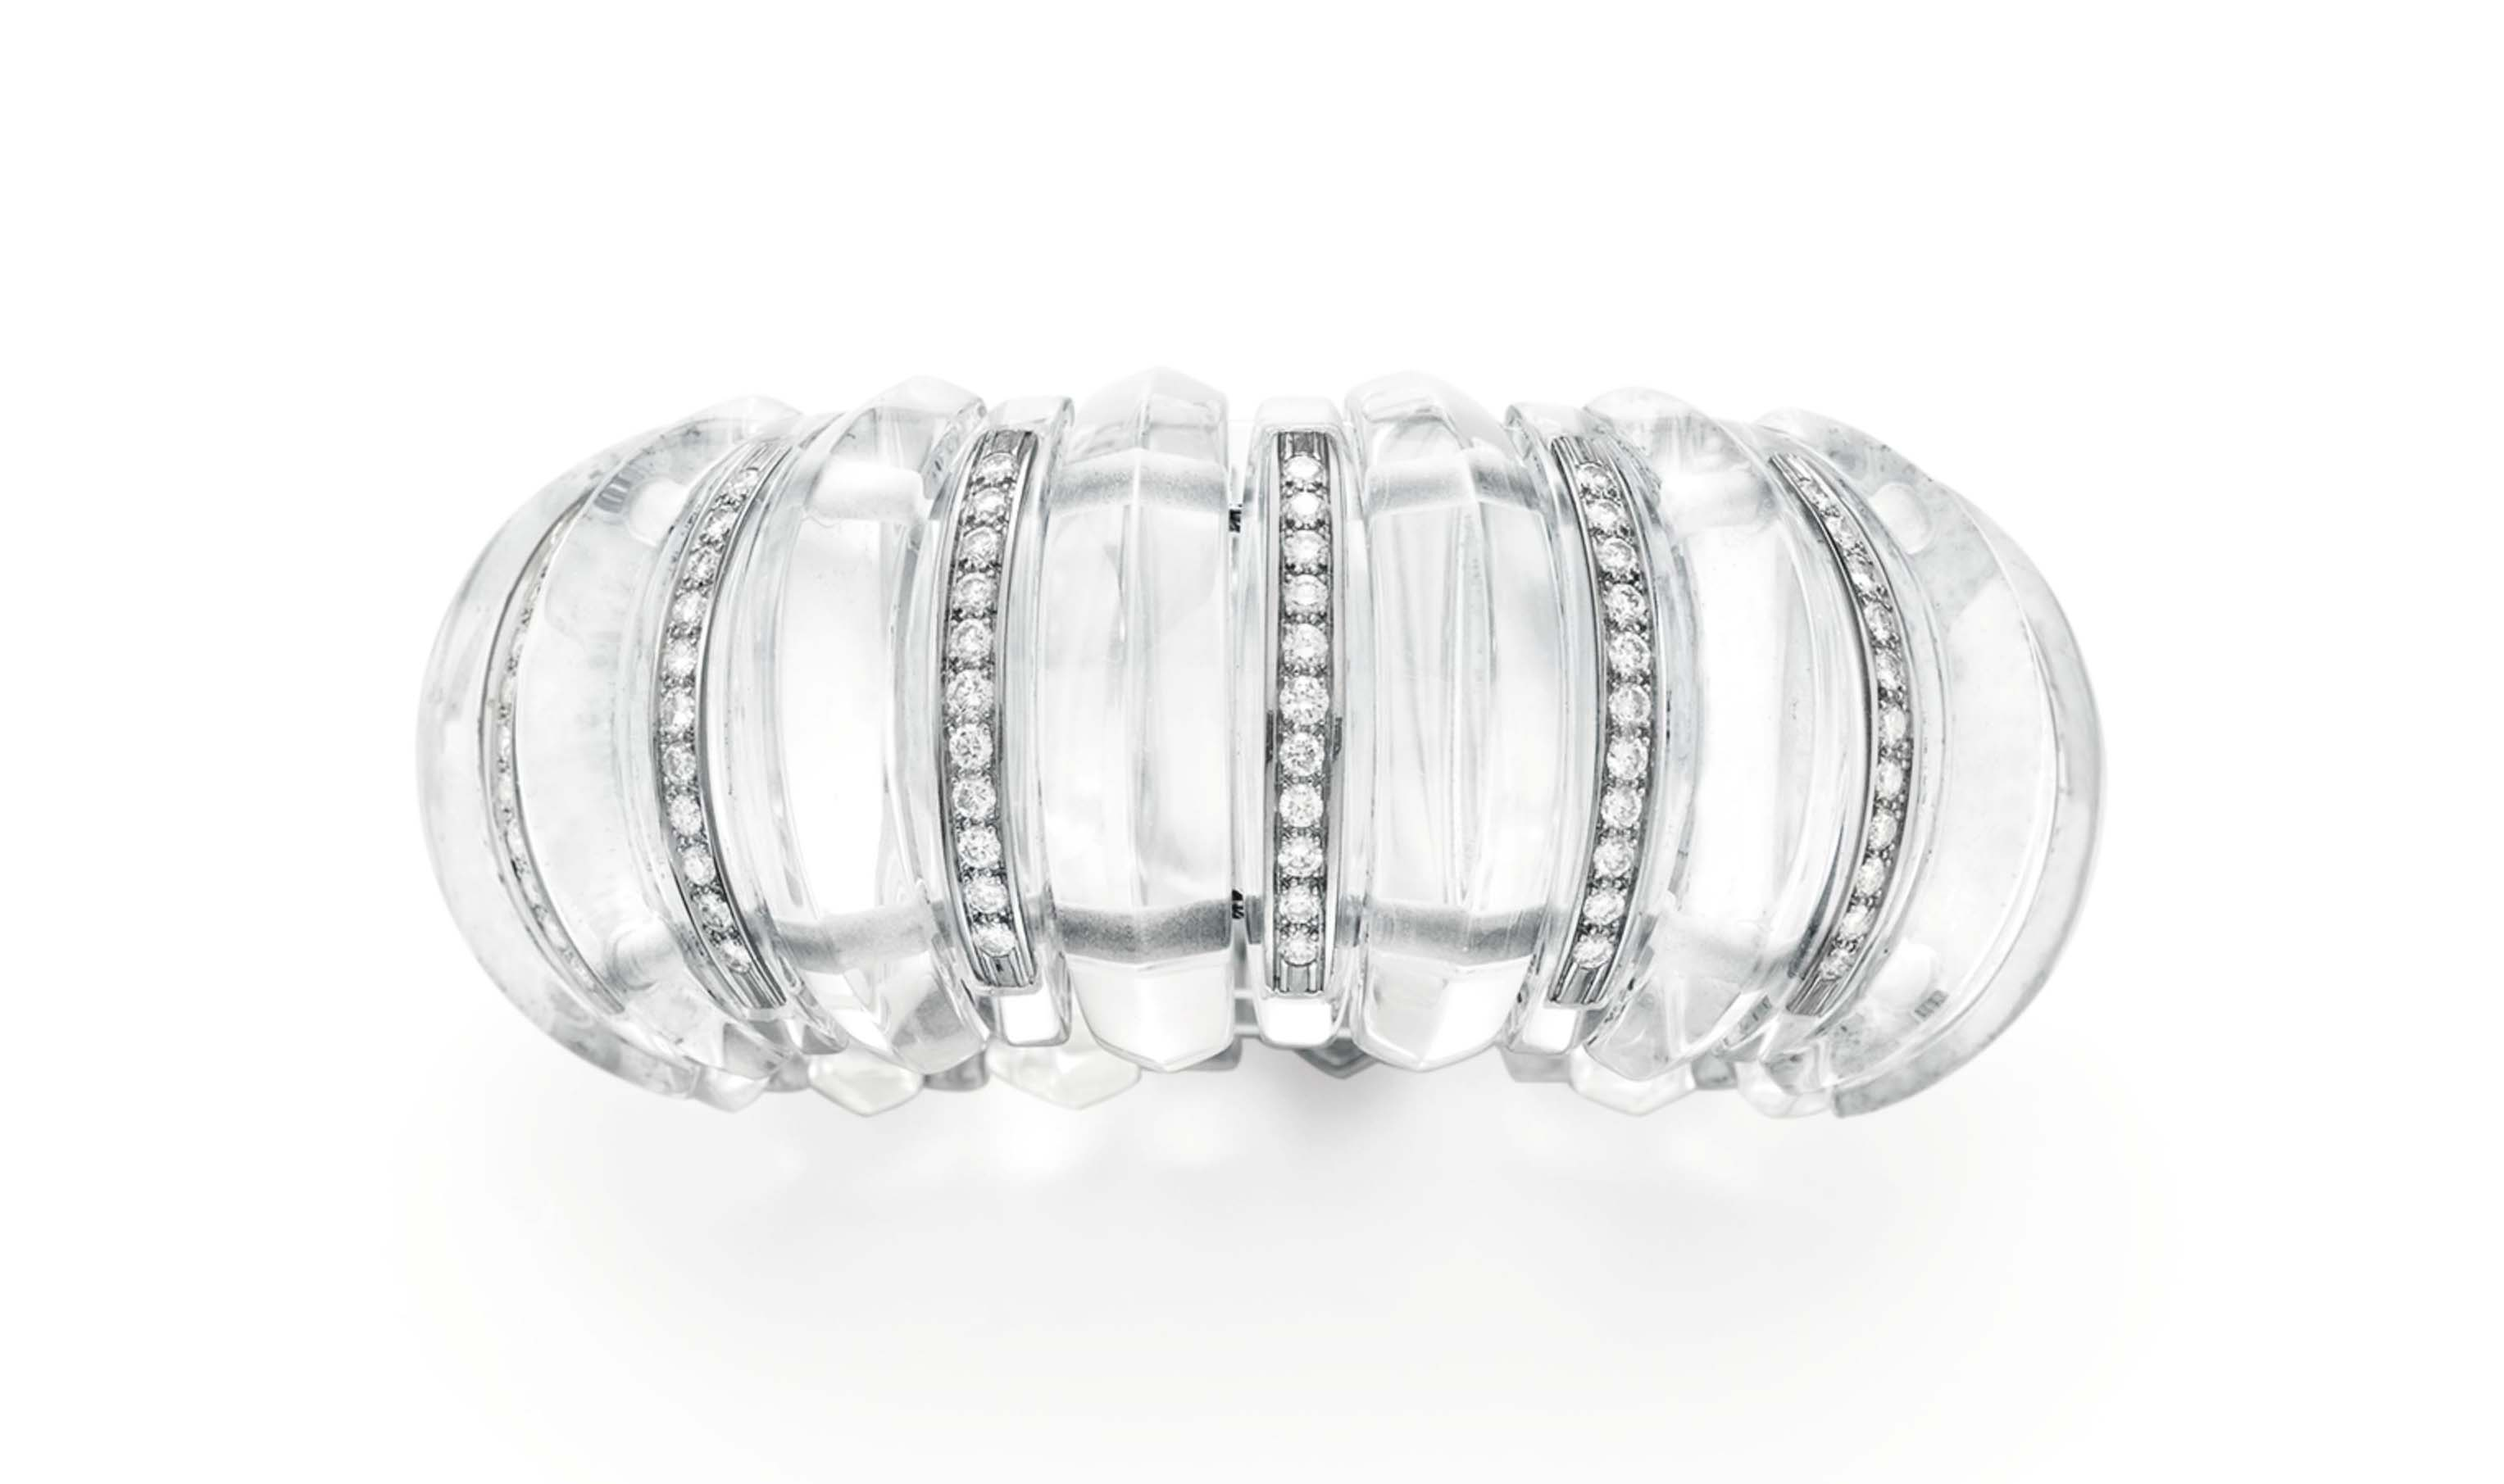 A ROCK CRYSTAL AND DIAMOND BRACELET, BY DEMNER